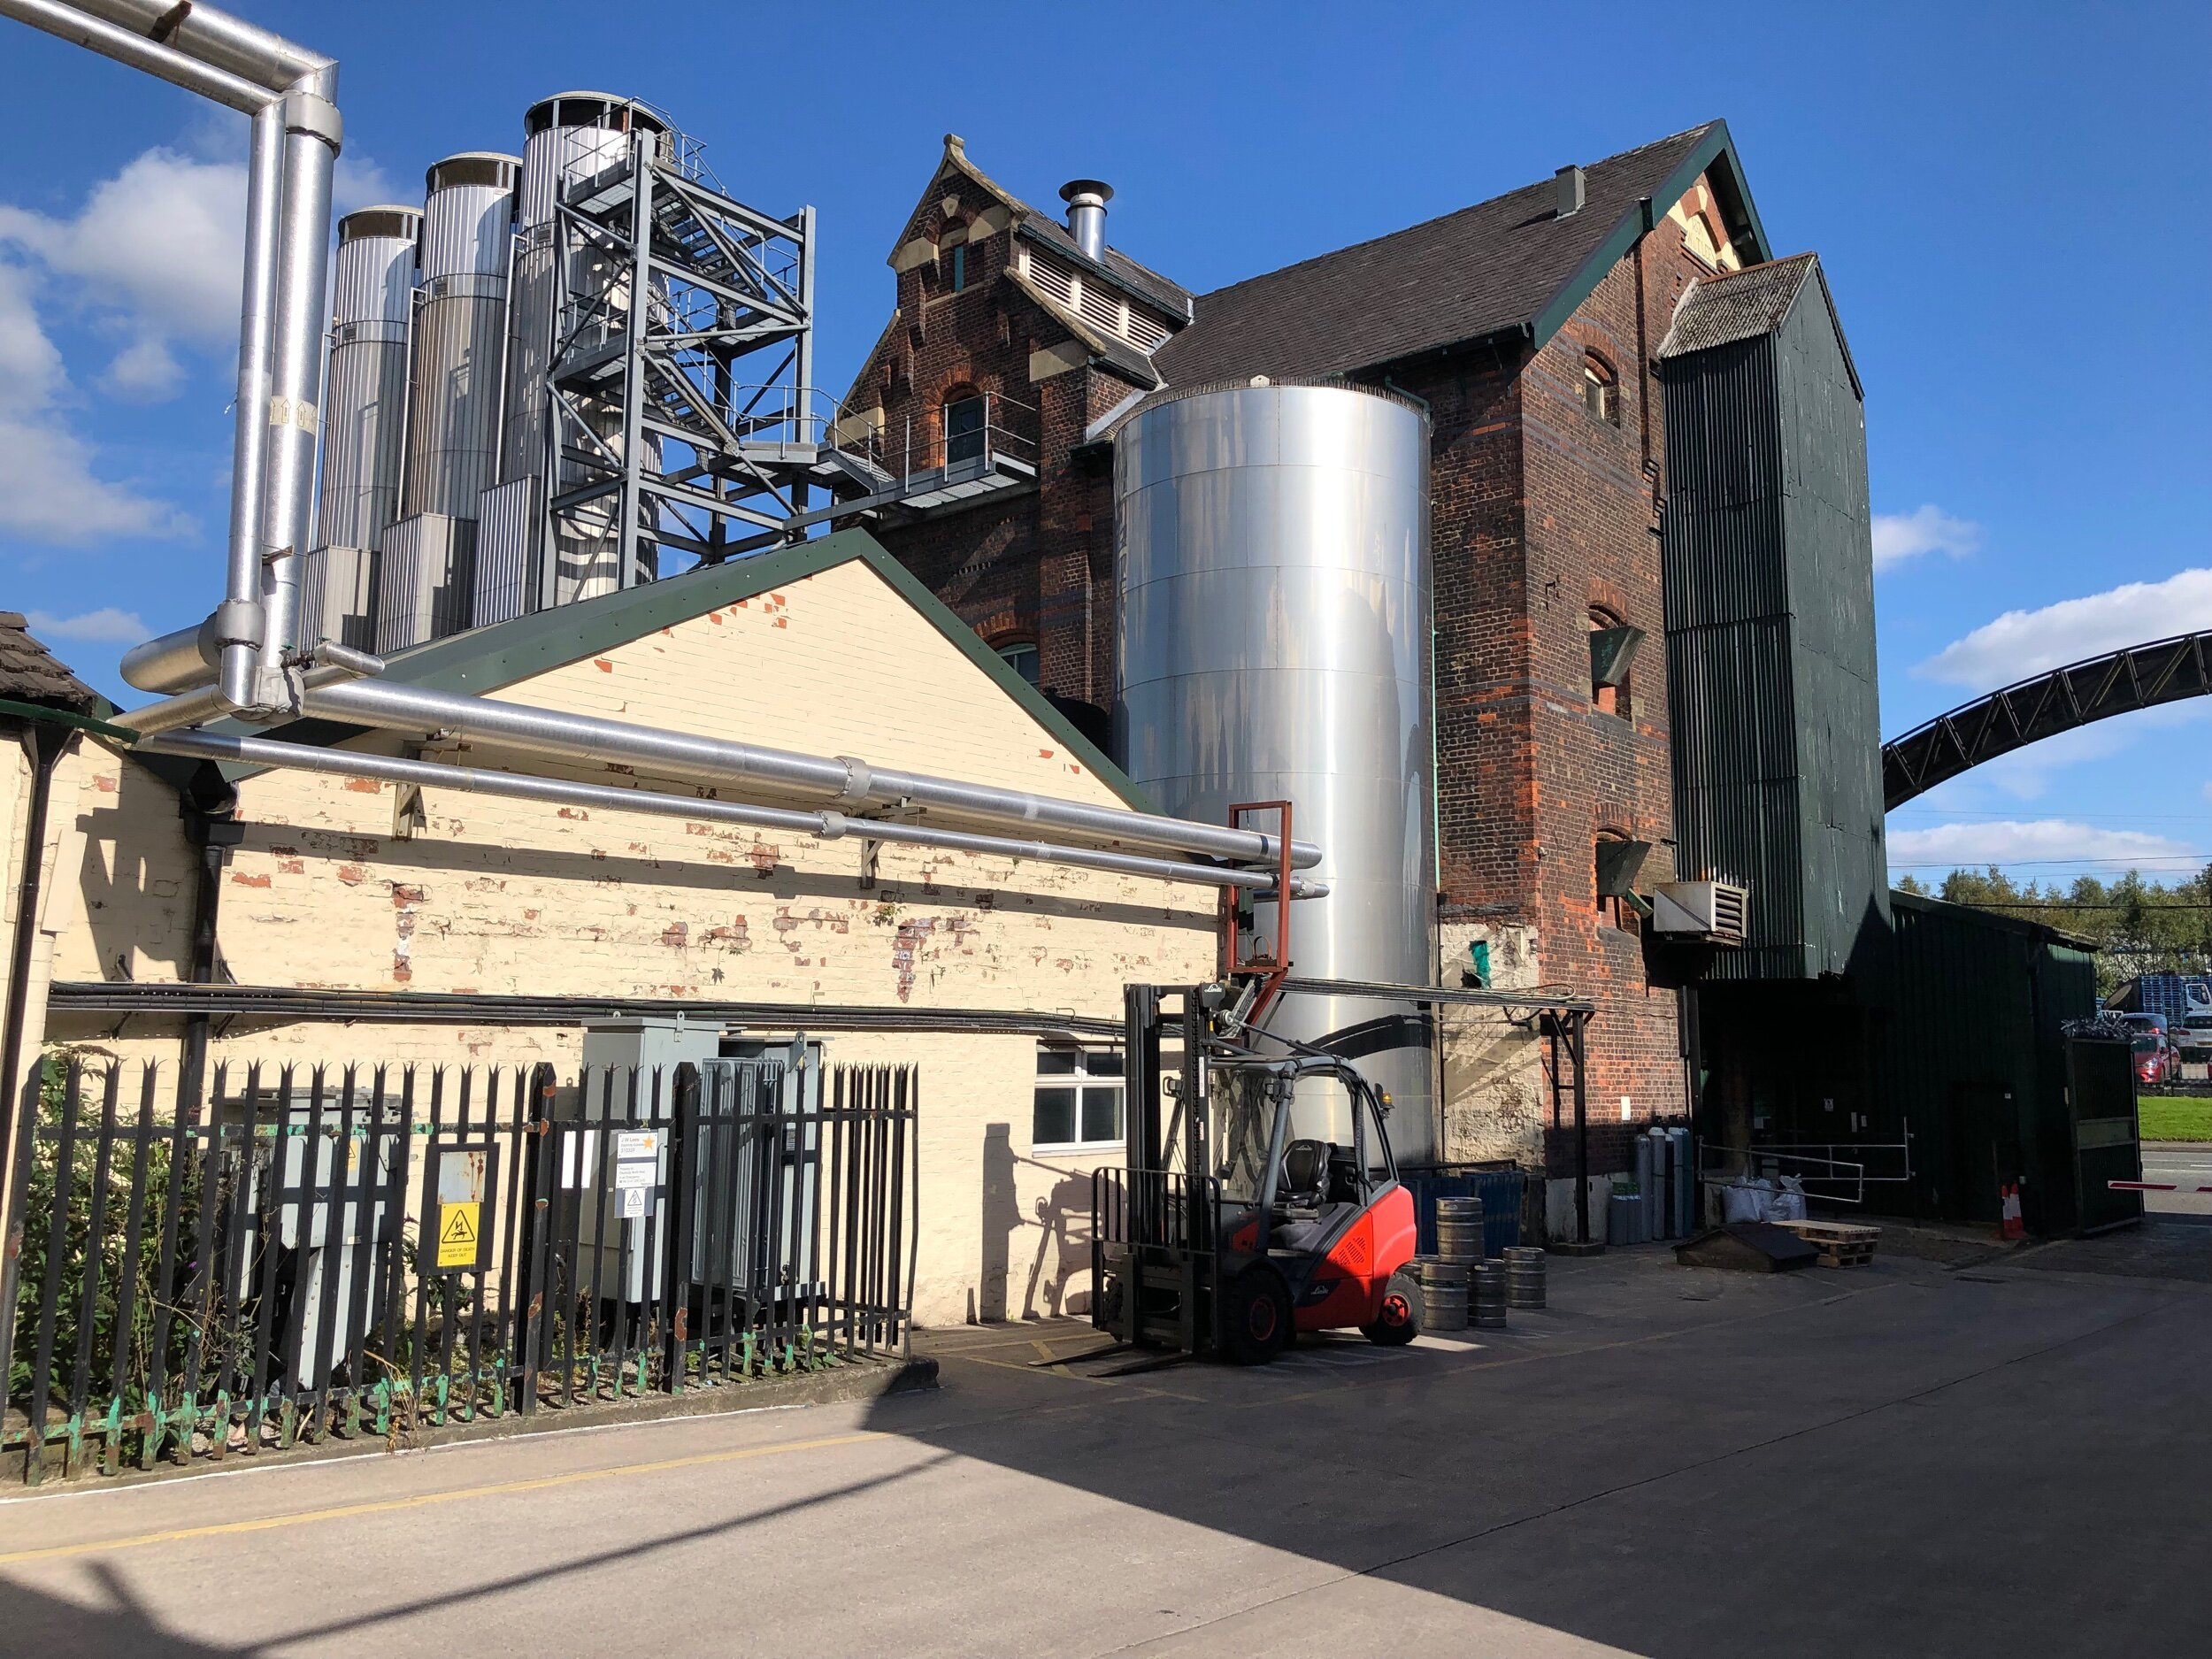 More brewery yard. Lees also contract brews for Carlsberg.